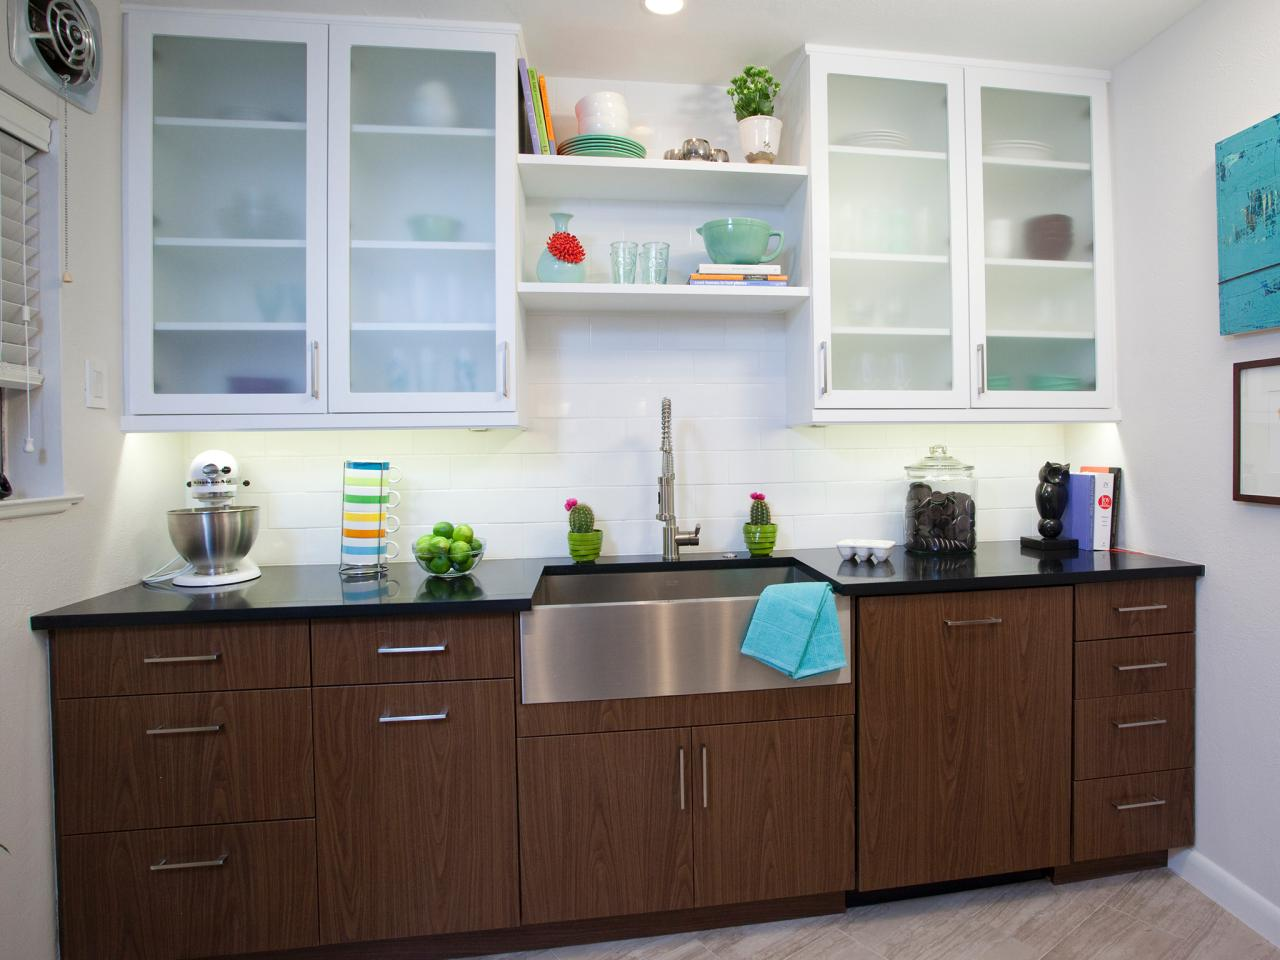 refinishing kitchen cabinet ideas: pictures & tips from hgtv | hgtv